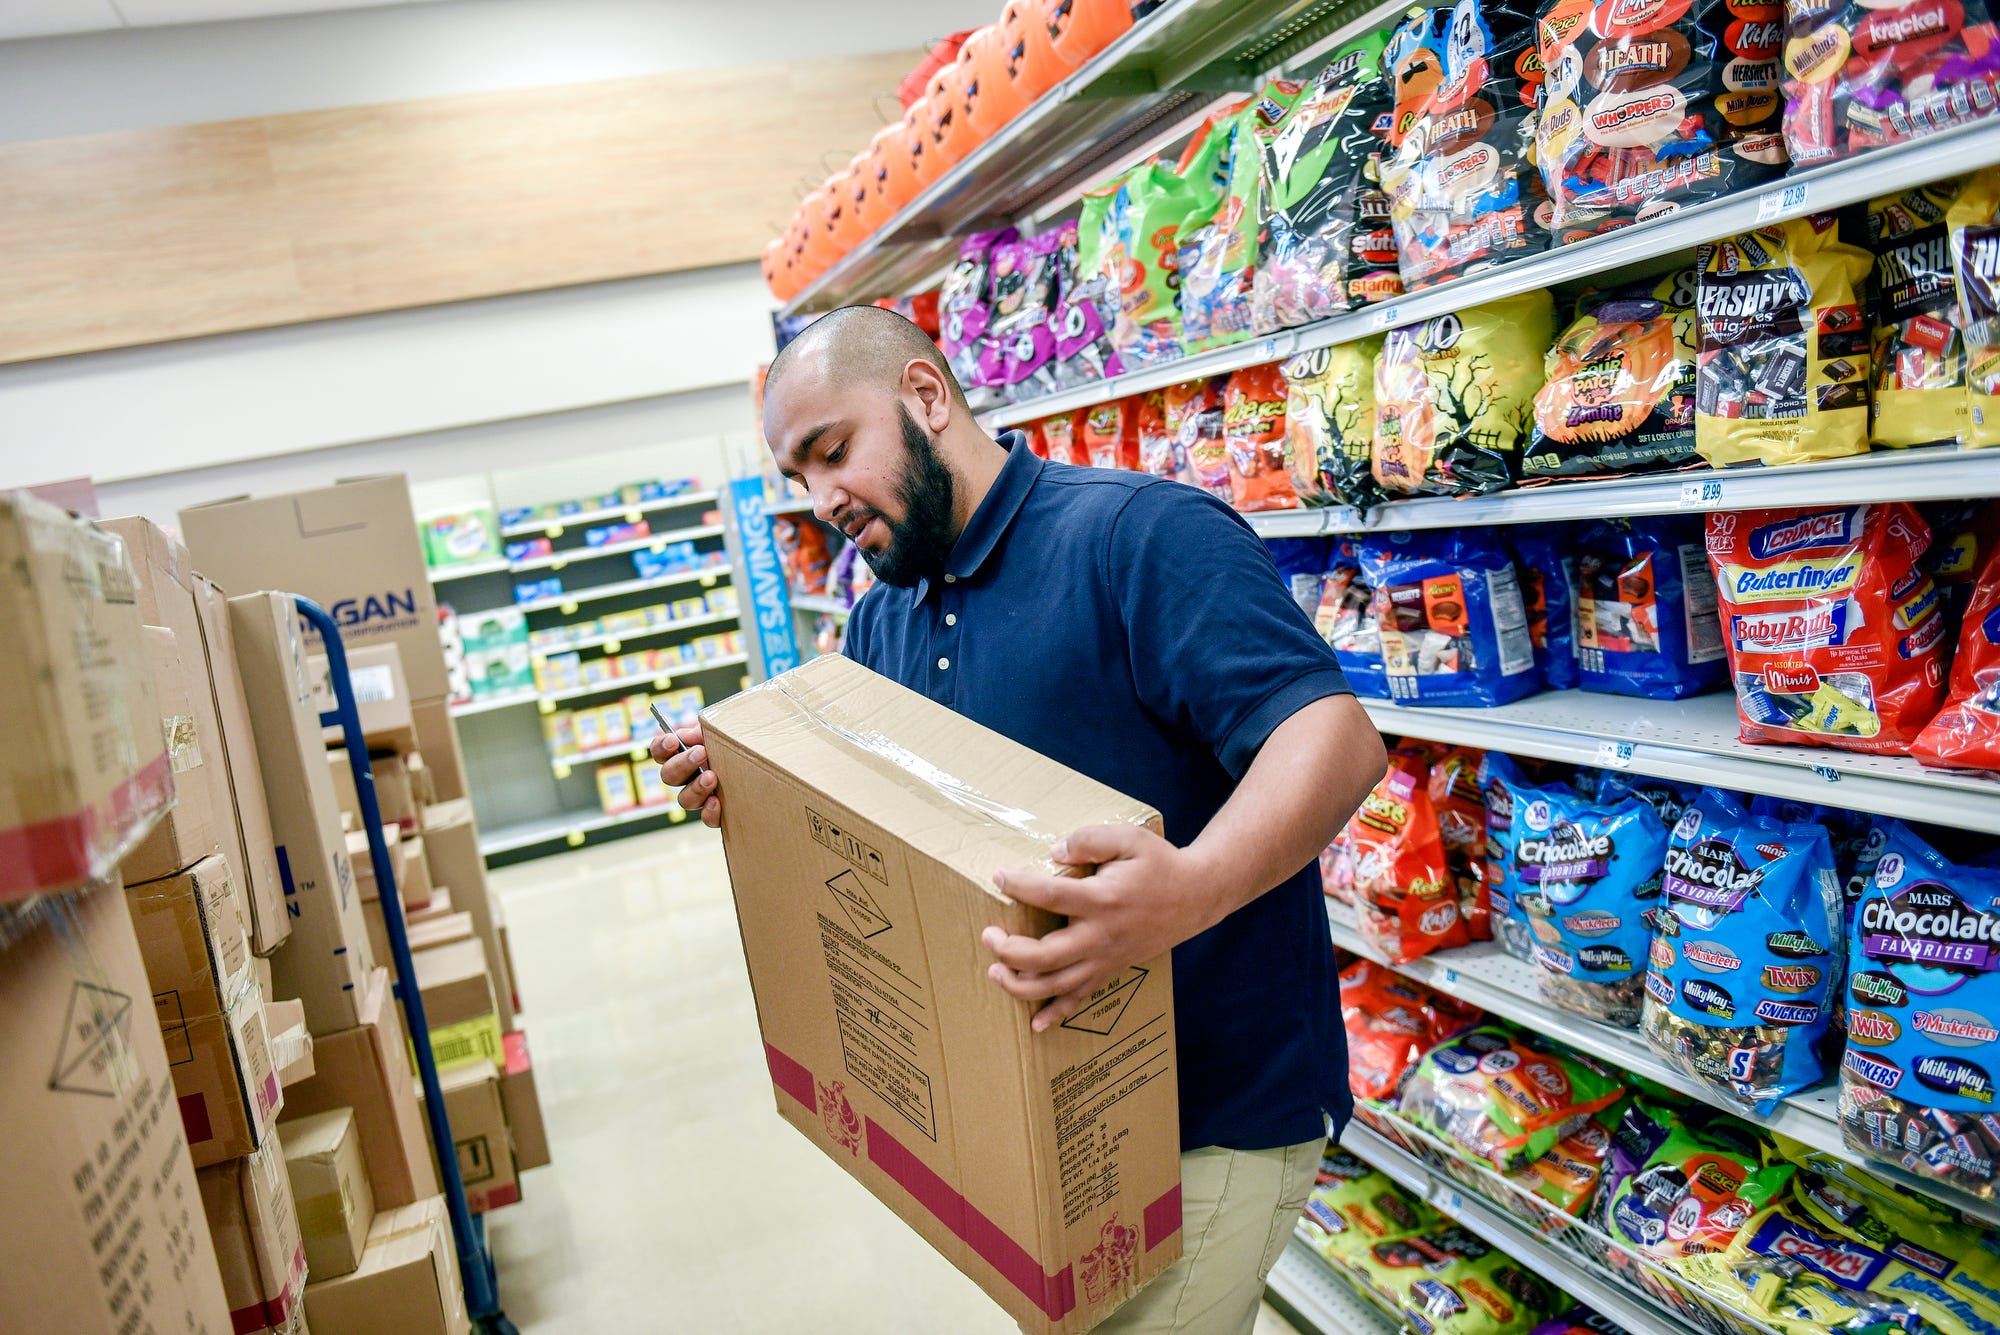 Benito Flores, 25, works on unpacking boxes for another employee while working a shift on Thursday, Oct. 3, 2019, at the Rite Aid in East Lansing. Flores is working two jobs to help out with his $10,000 in student debt.